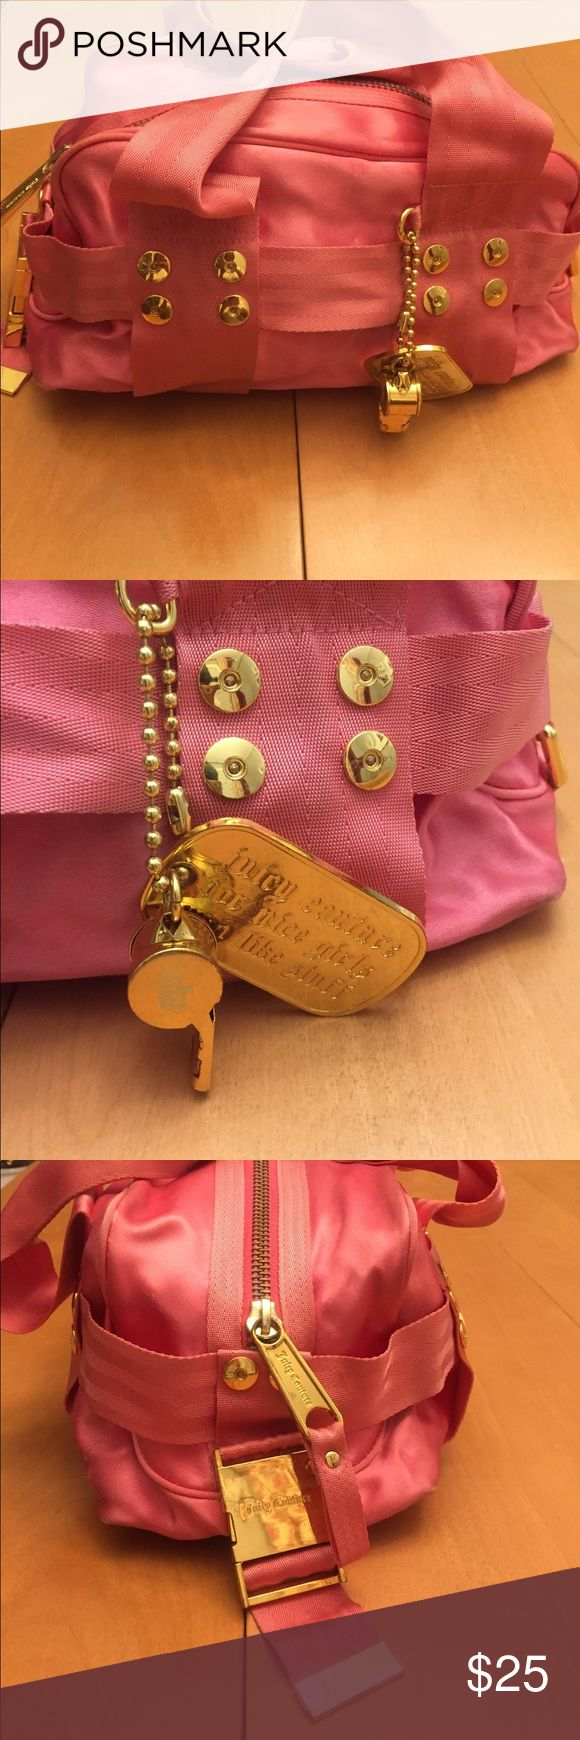 Pink and Gold Juicy Couture Handbag Bright Pink, silky material with gold hardware. Juicy Couture Bags Totes